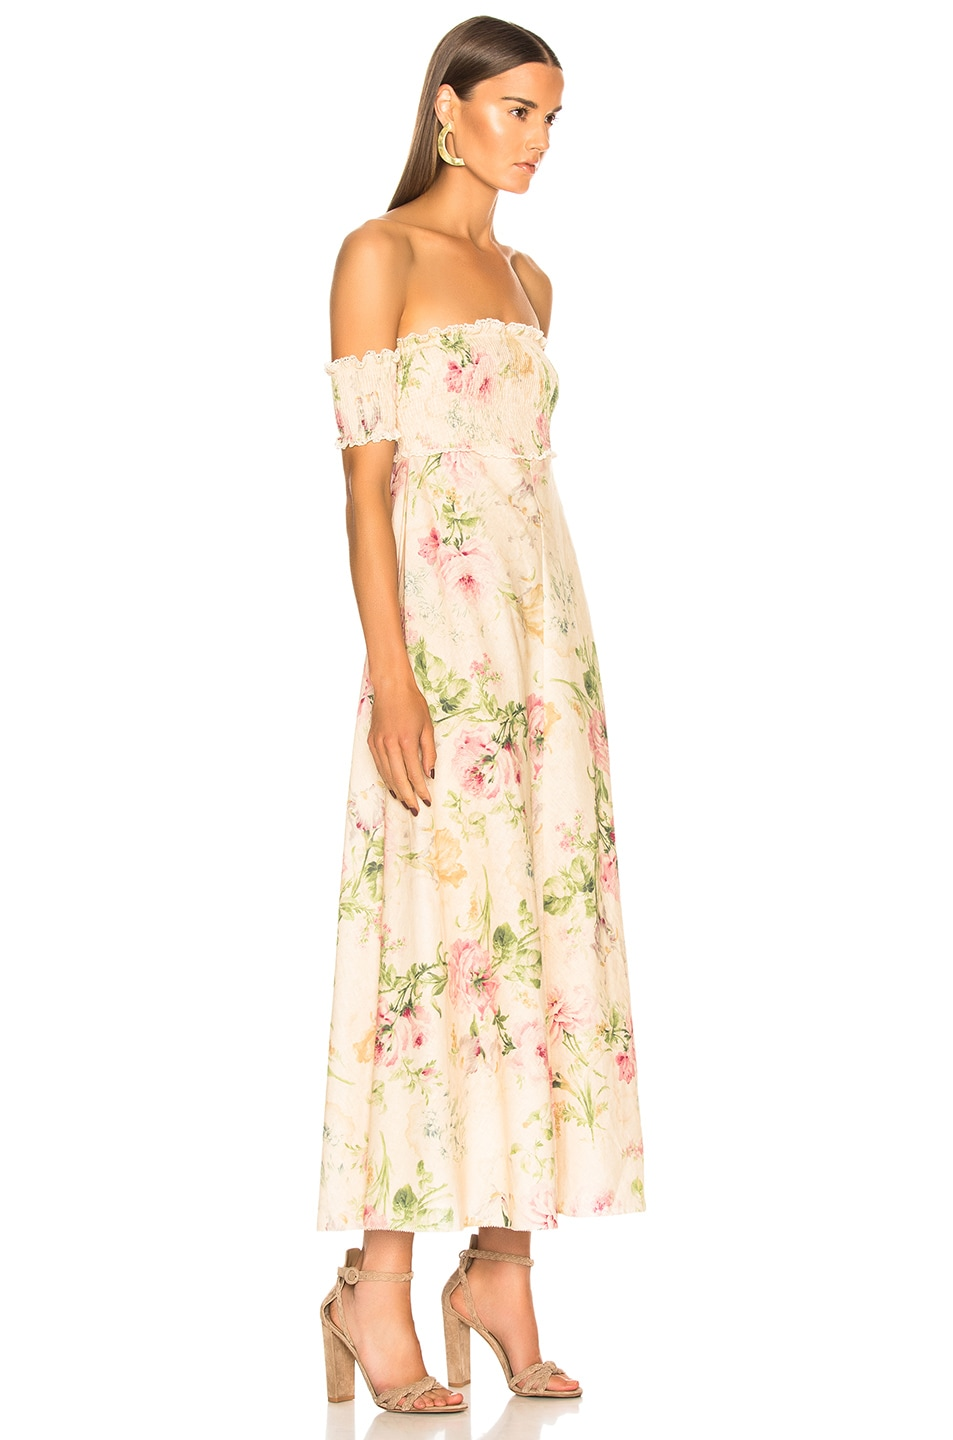 0ae22d151a07 Image 2 of Zimmermann Iris Shirred Bodice Maxi Dress in Cream Floral